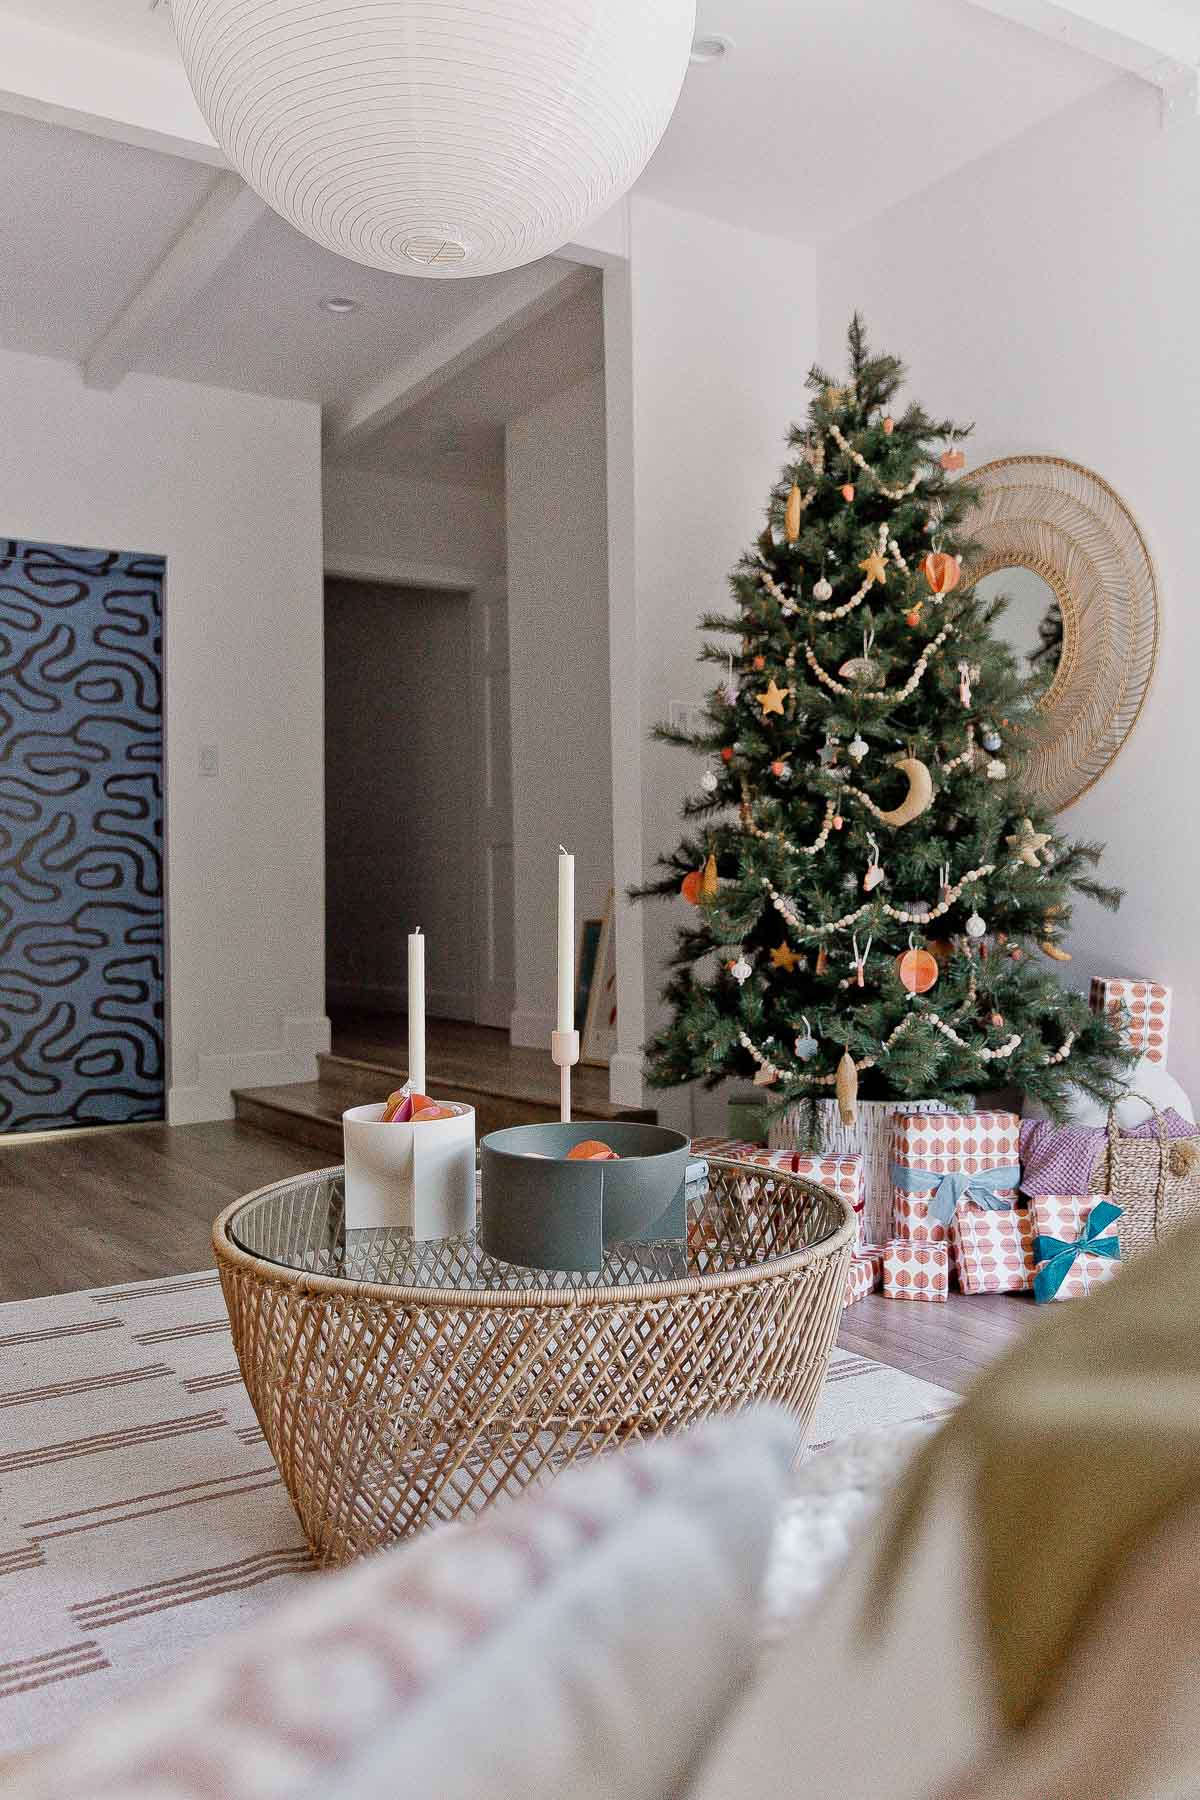 Large Christmas tree in the corner of a modern boho living room.